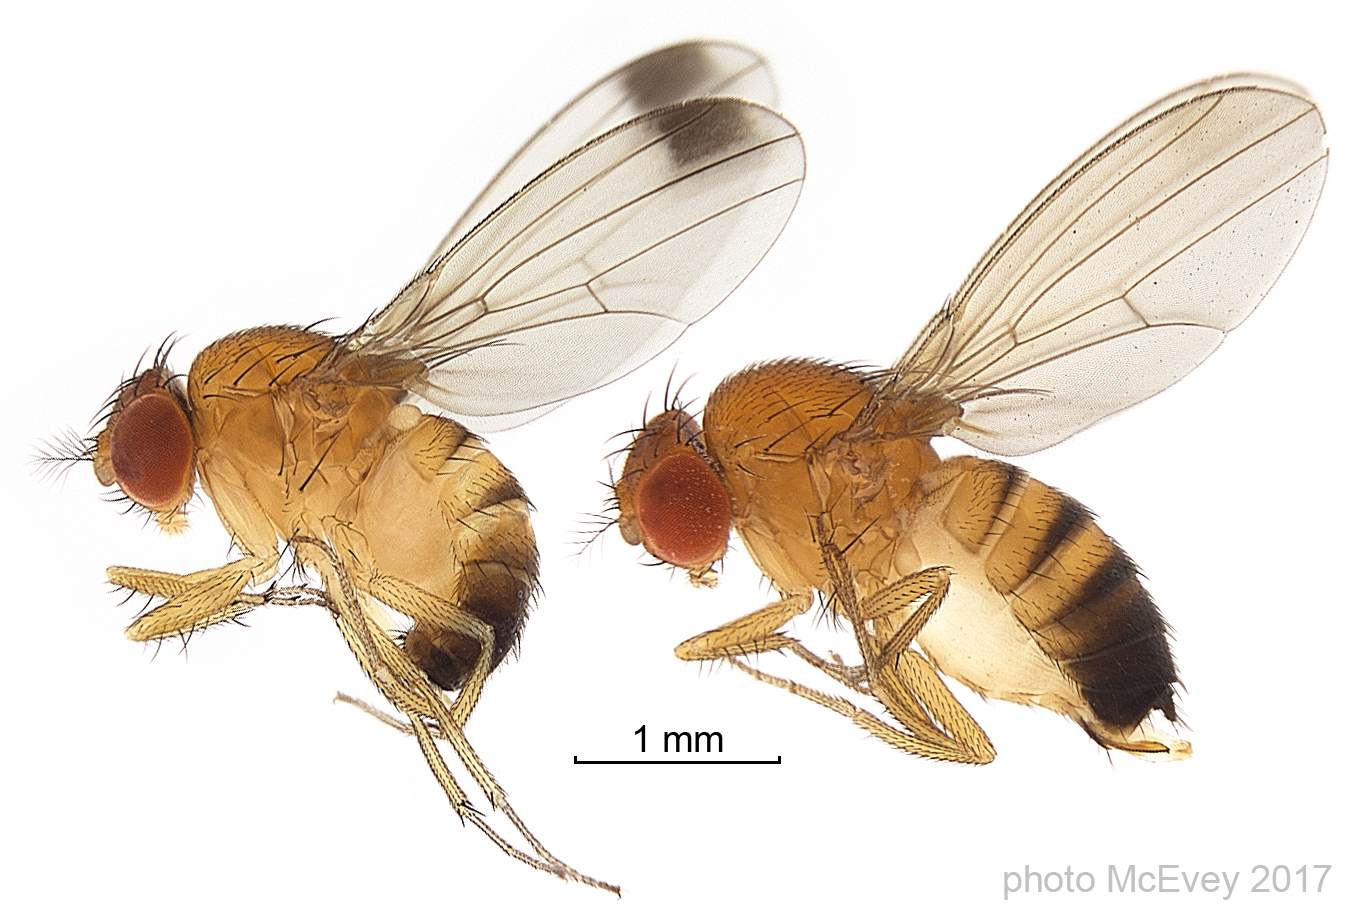 How Fruit Fly Genetics Could Save Your Summer Smoothies